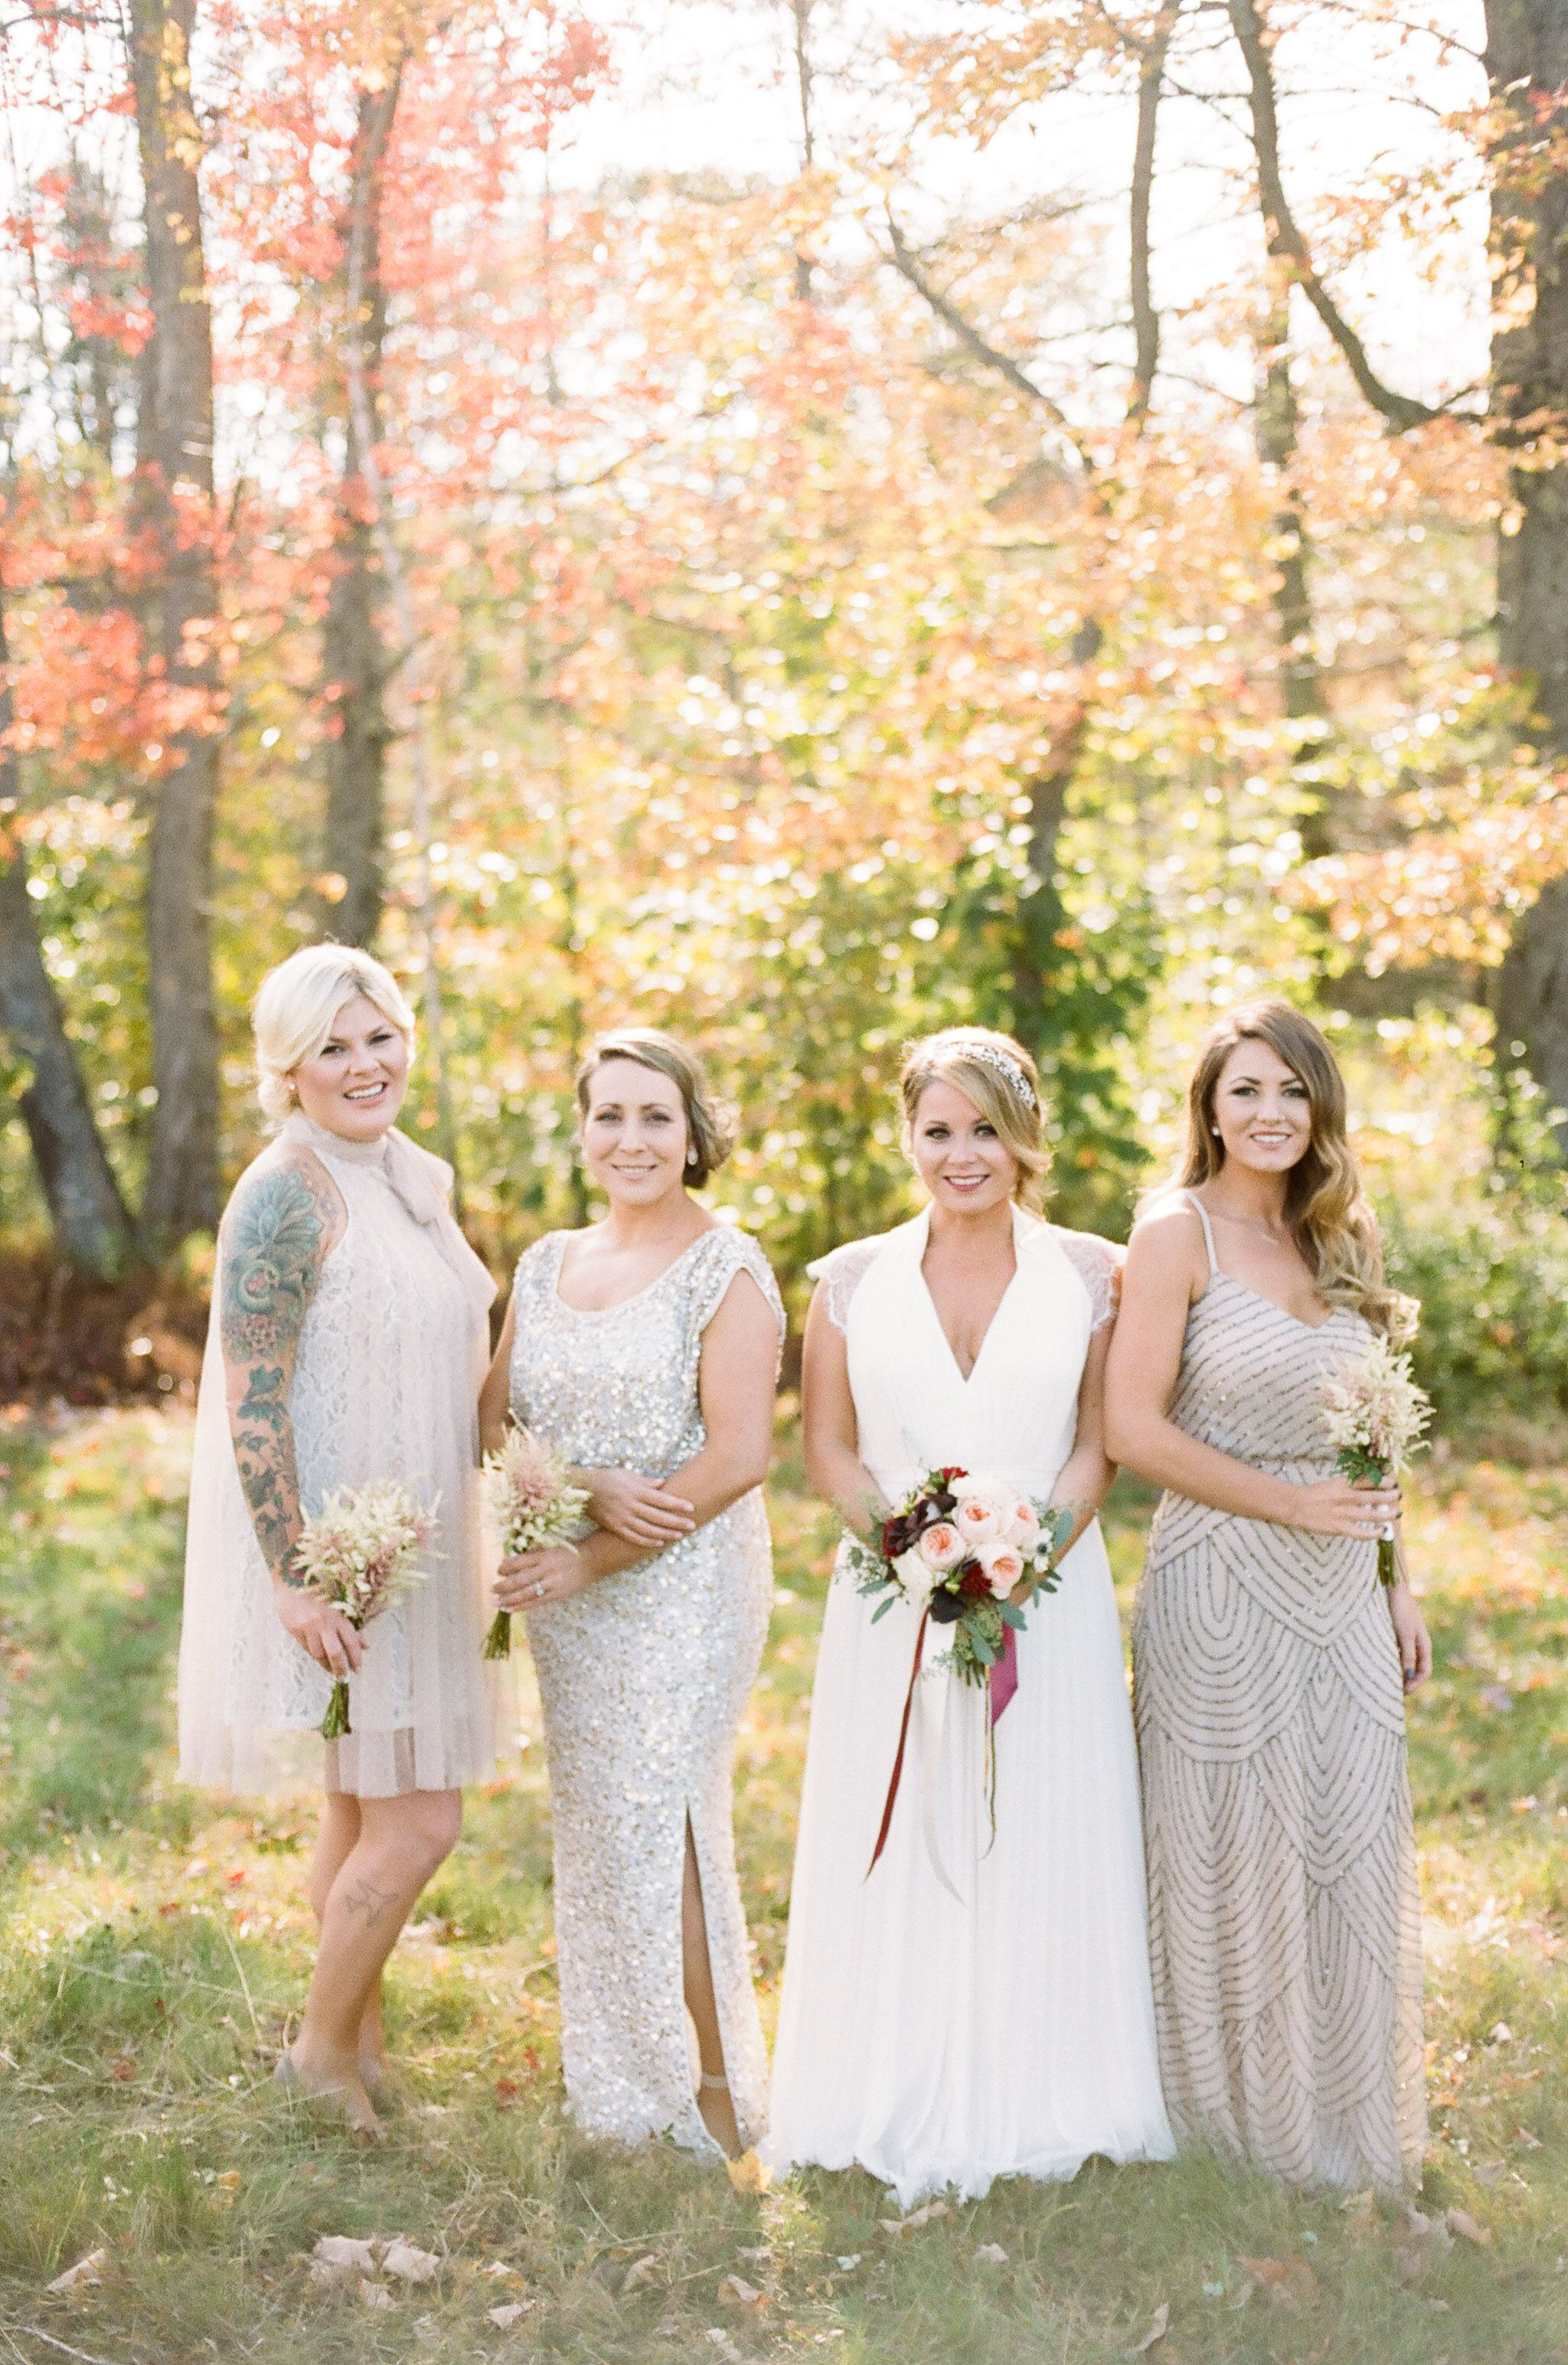 Dresses for wedding maids  Glam Shimmery Champagne Bridesmaid Dresses  Wedding bridesmaid